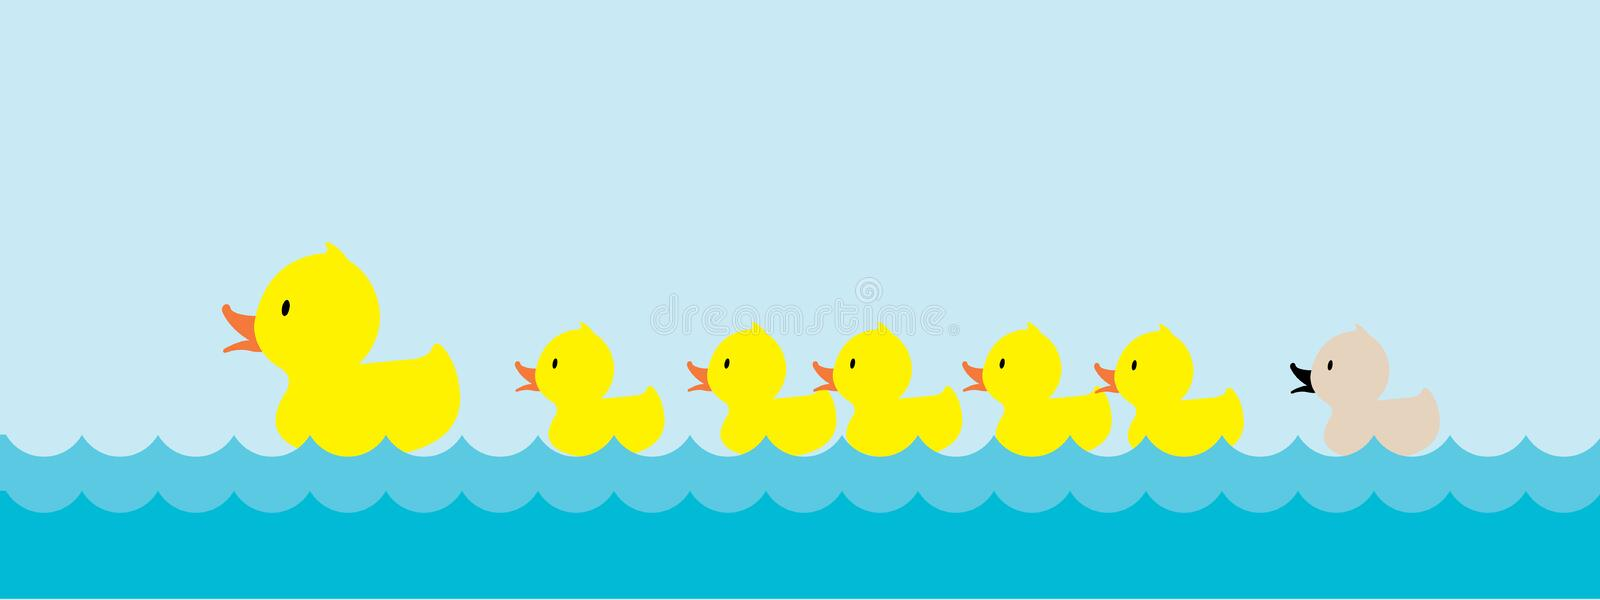 Ful duckling royaltyfri illustrationer